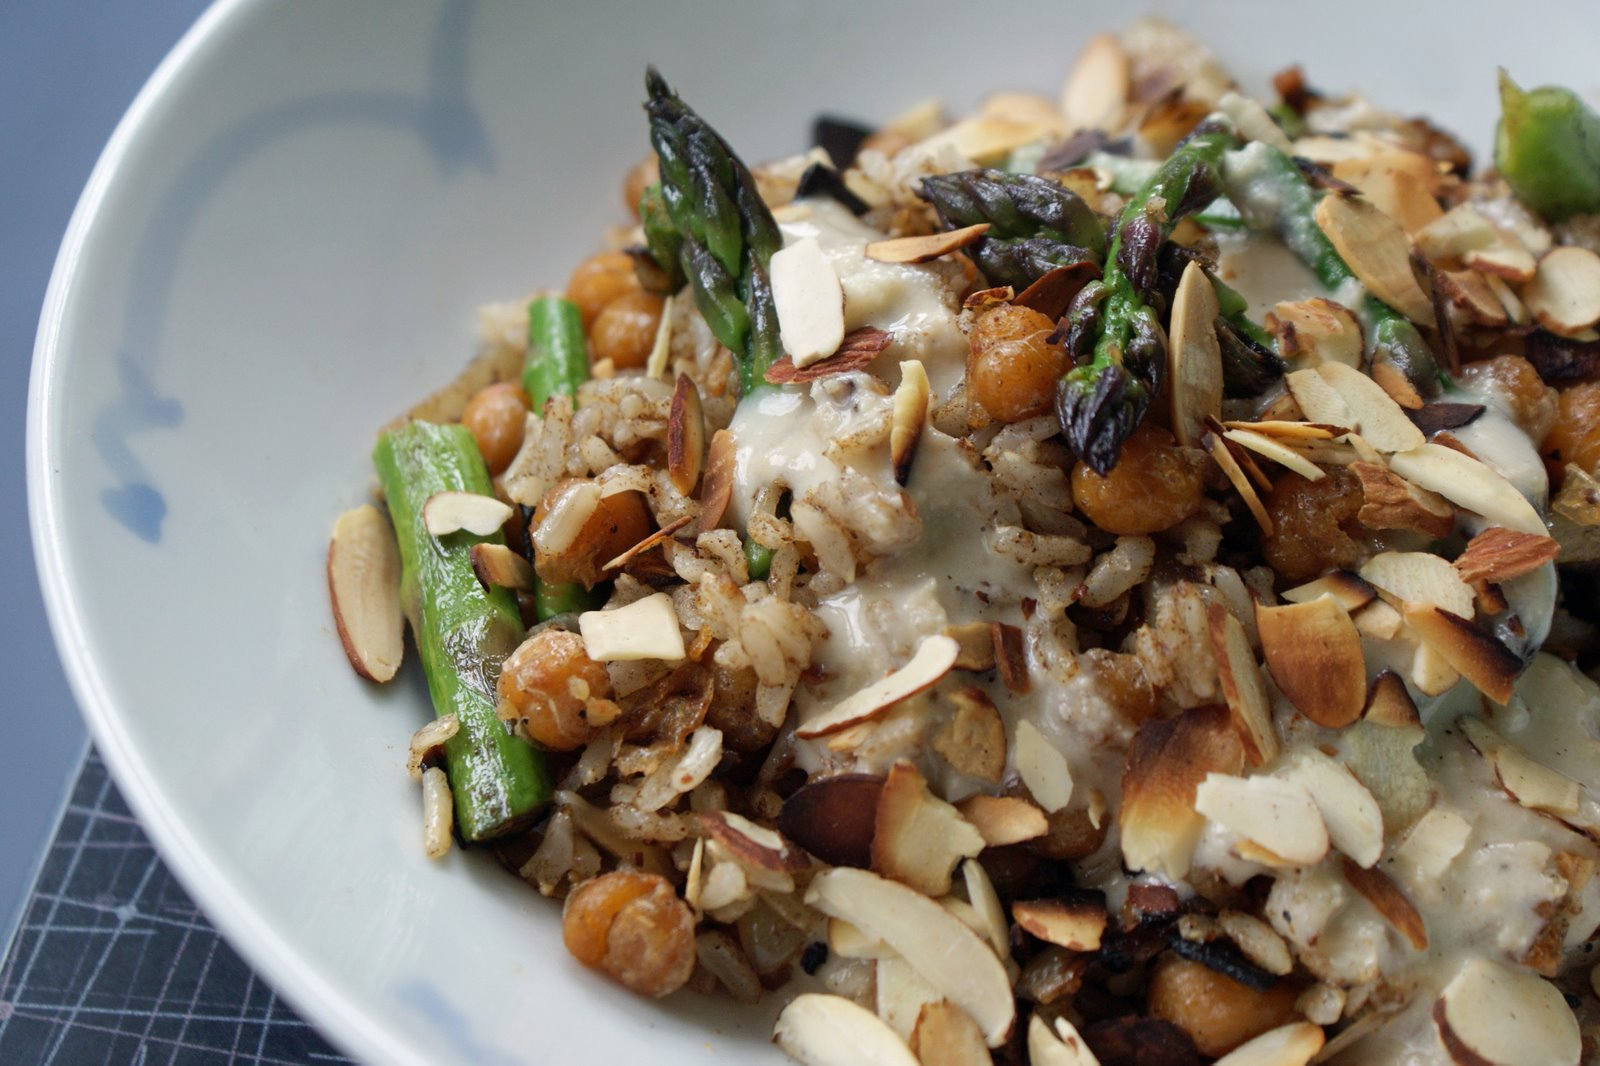 ... risotto lemony chickpea stir fry closeup vegetarian stir fry with